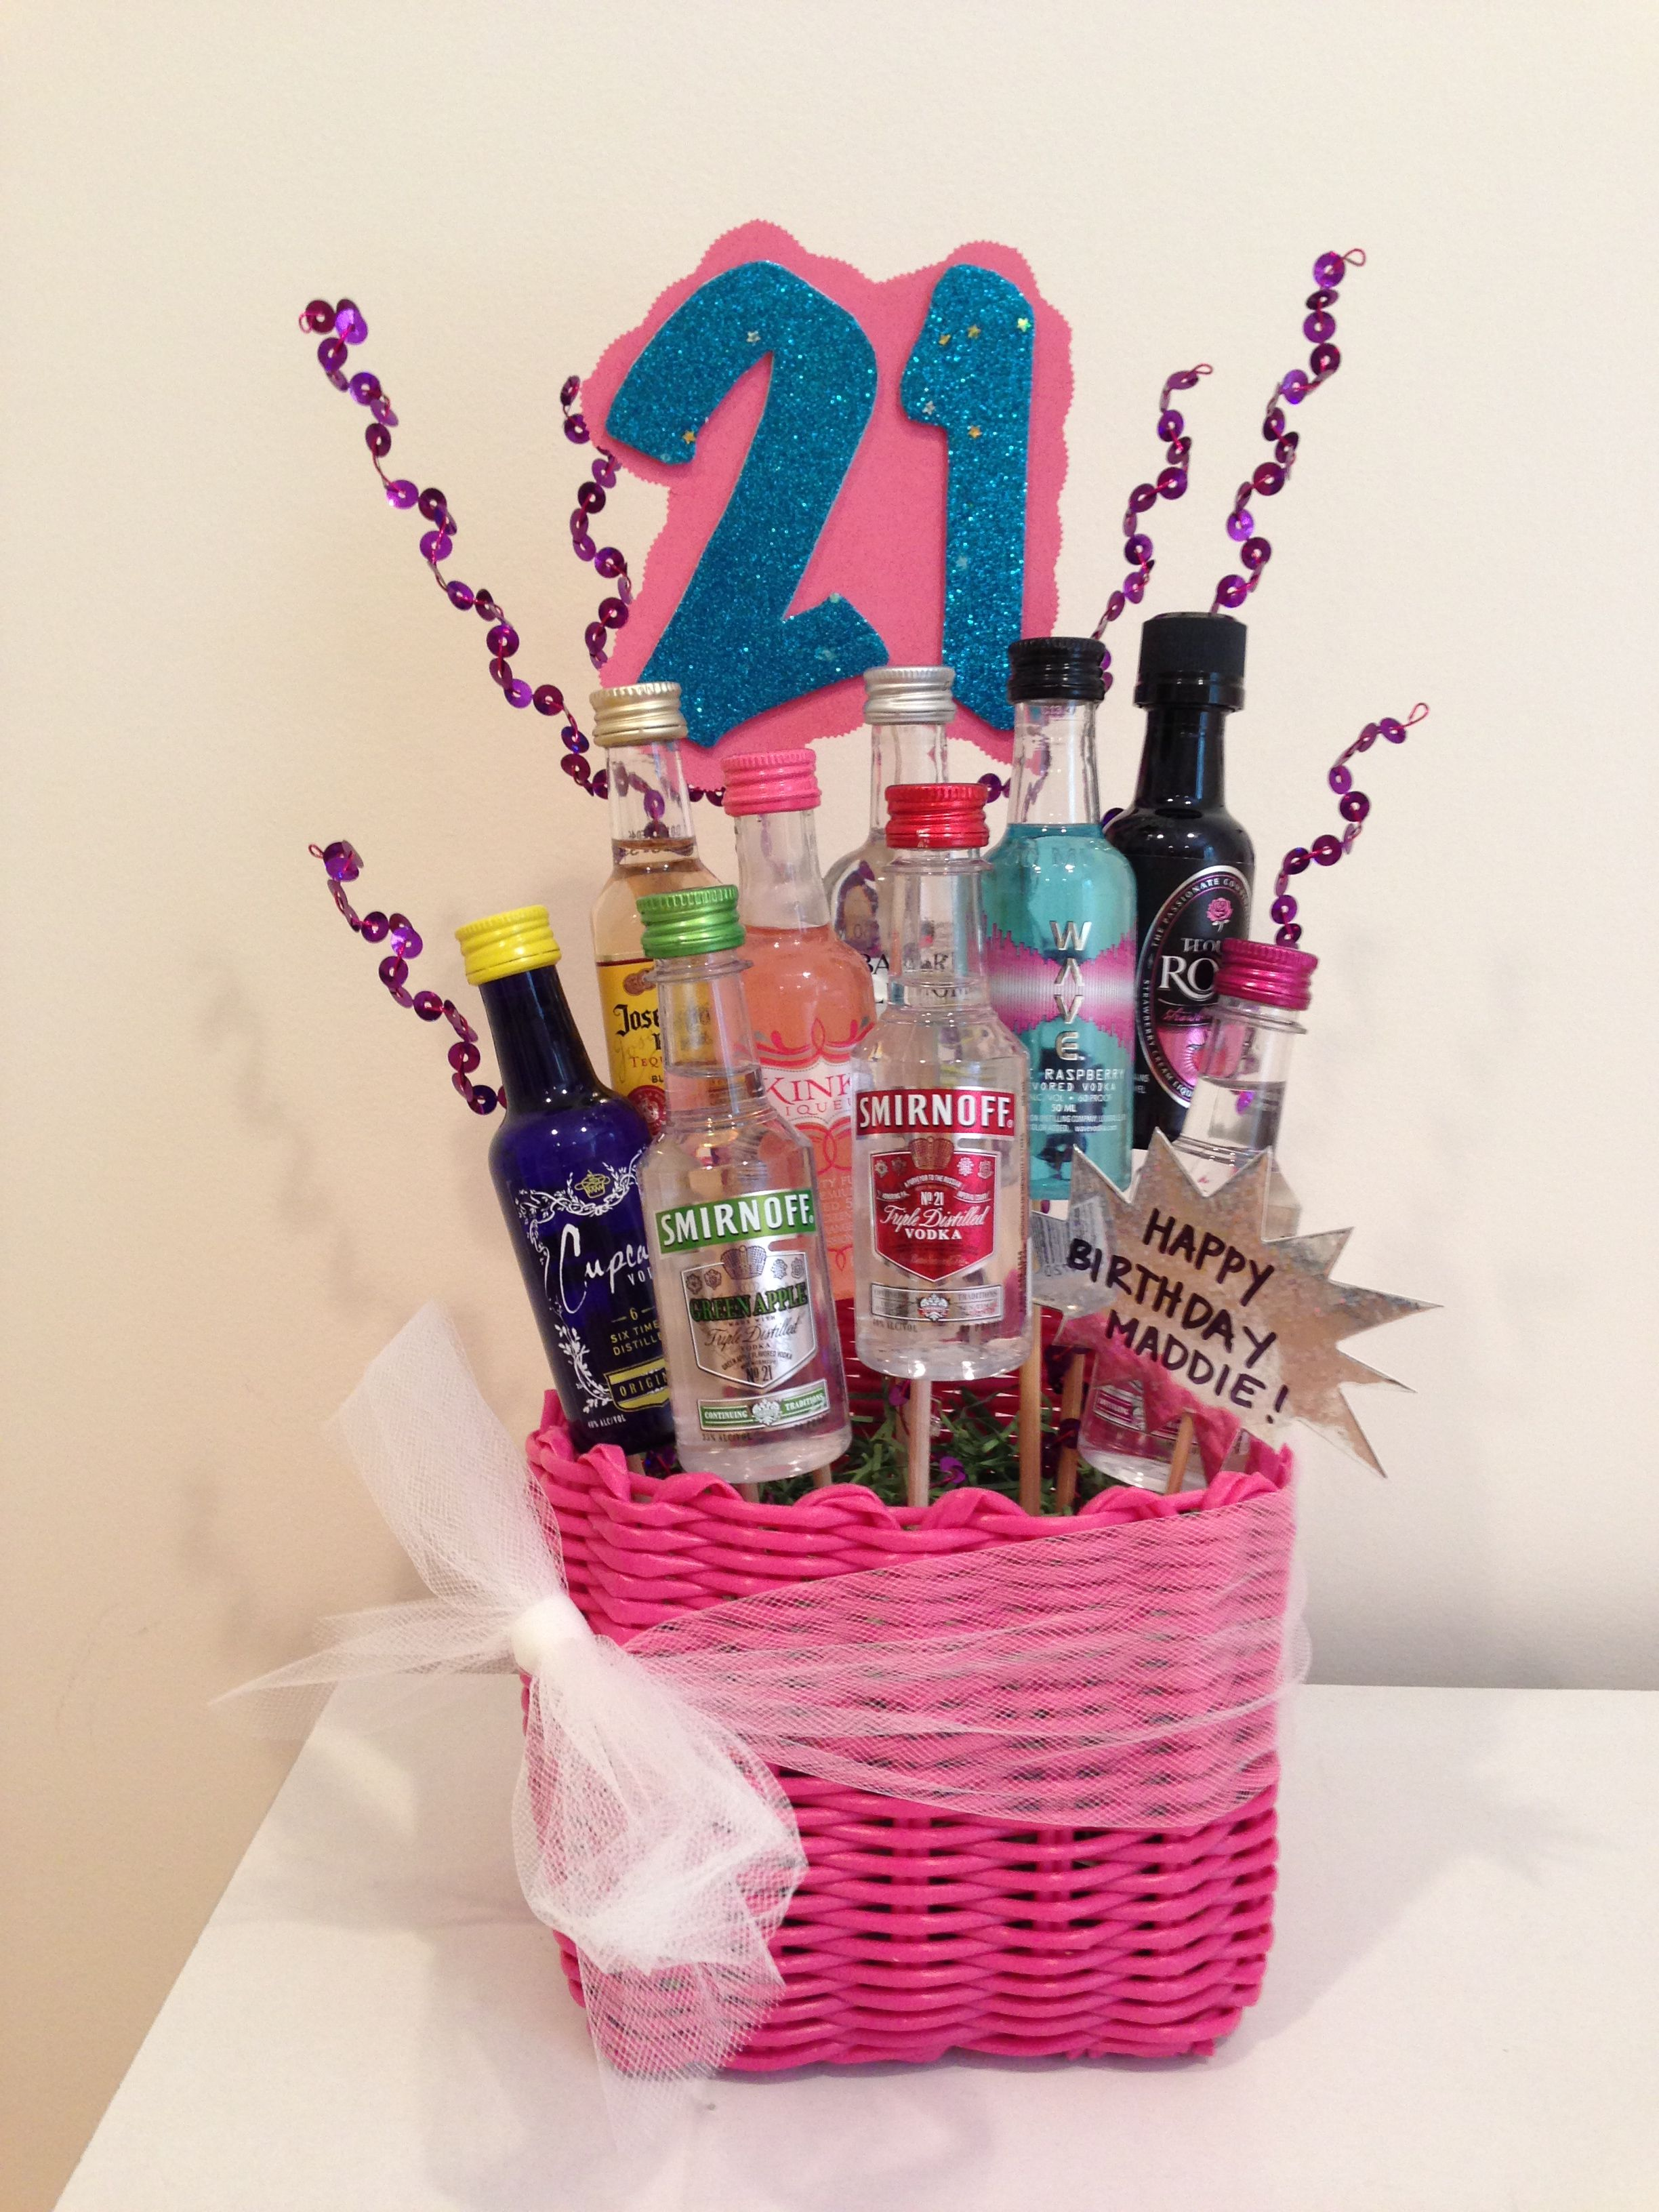 21st Birthday Gift Basket Great Idea Im So Going To Do This For My Sisters